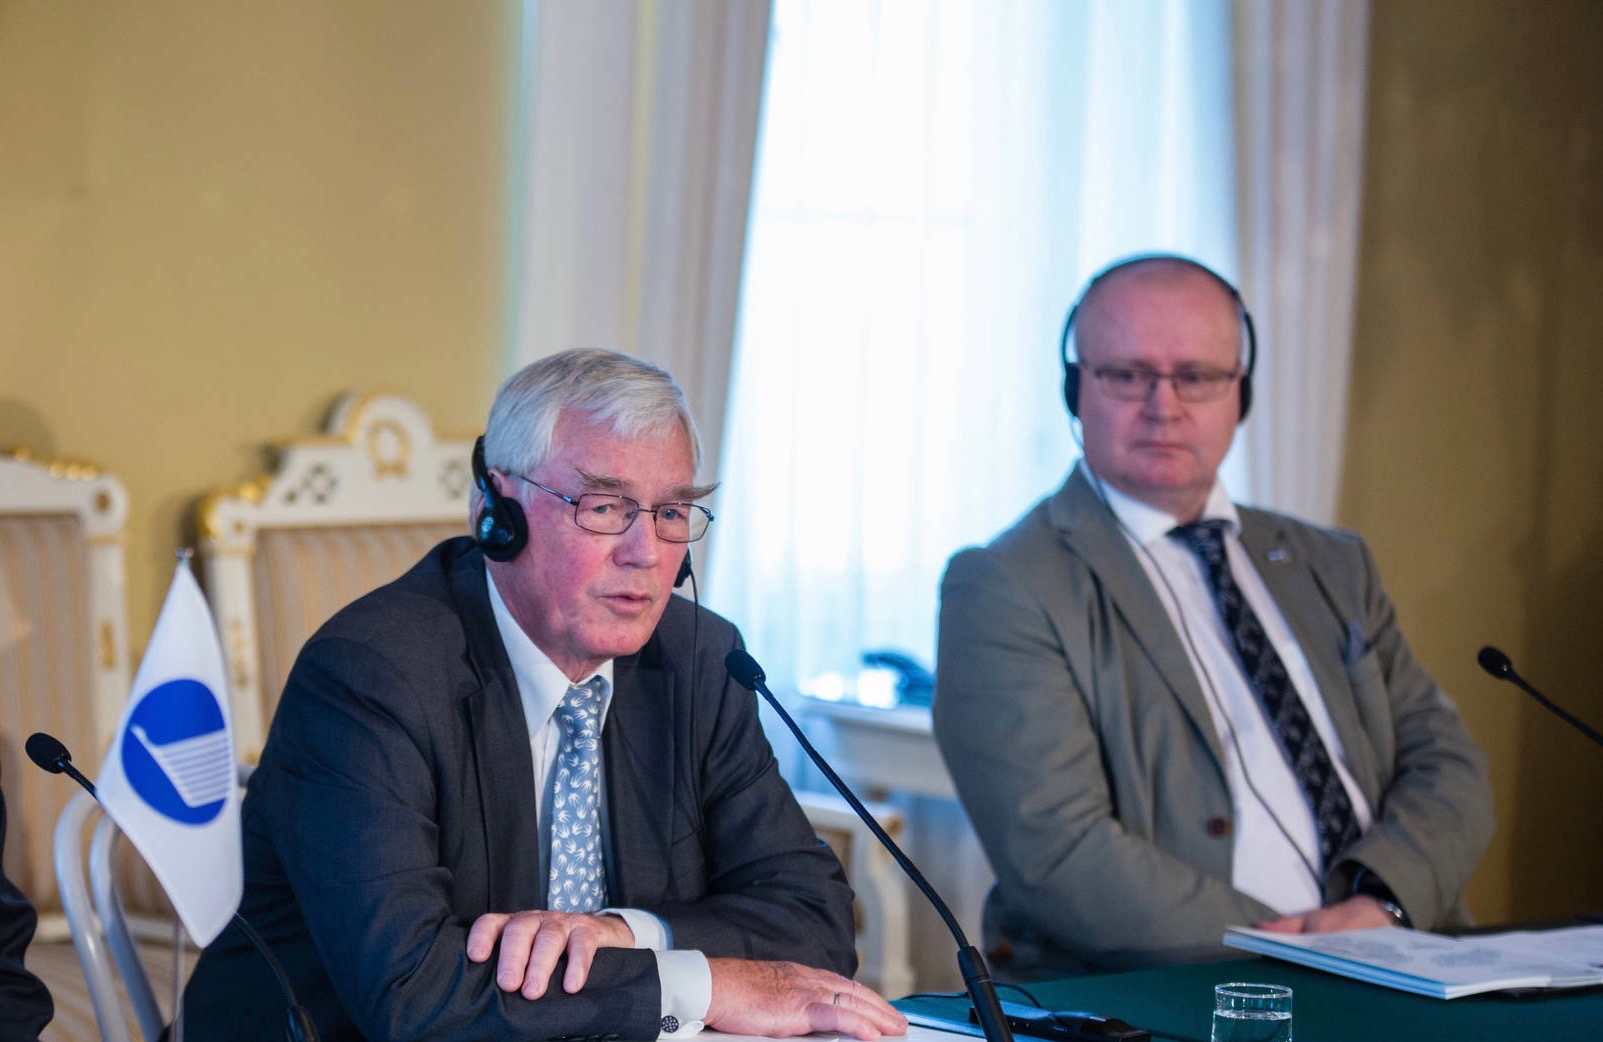 Poul Nielson: Introduce mandatory adult education and further training in the Nordics